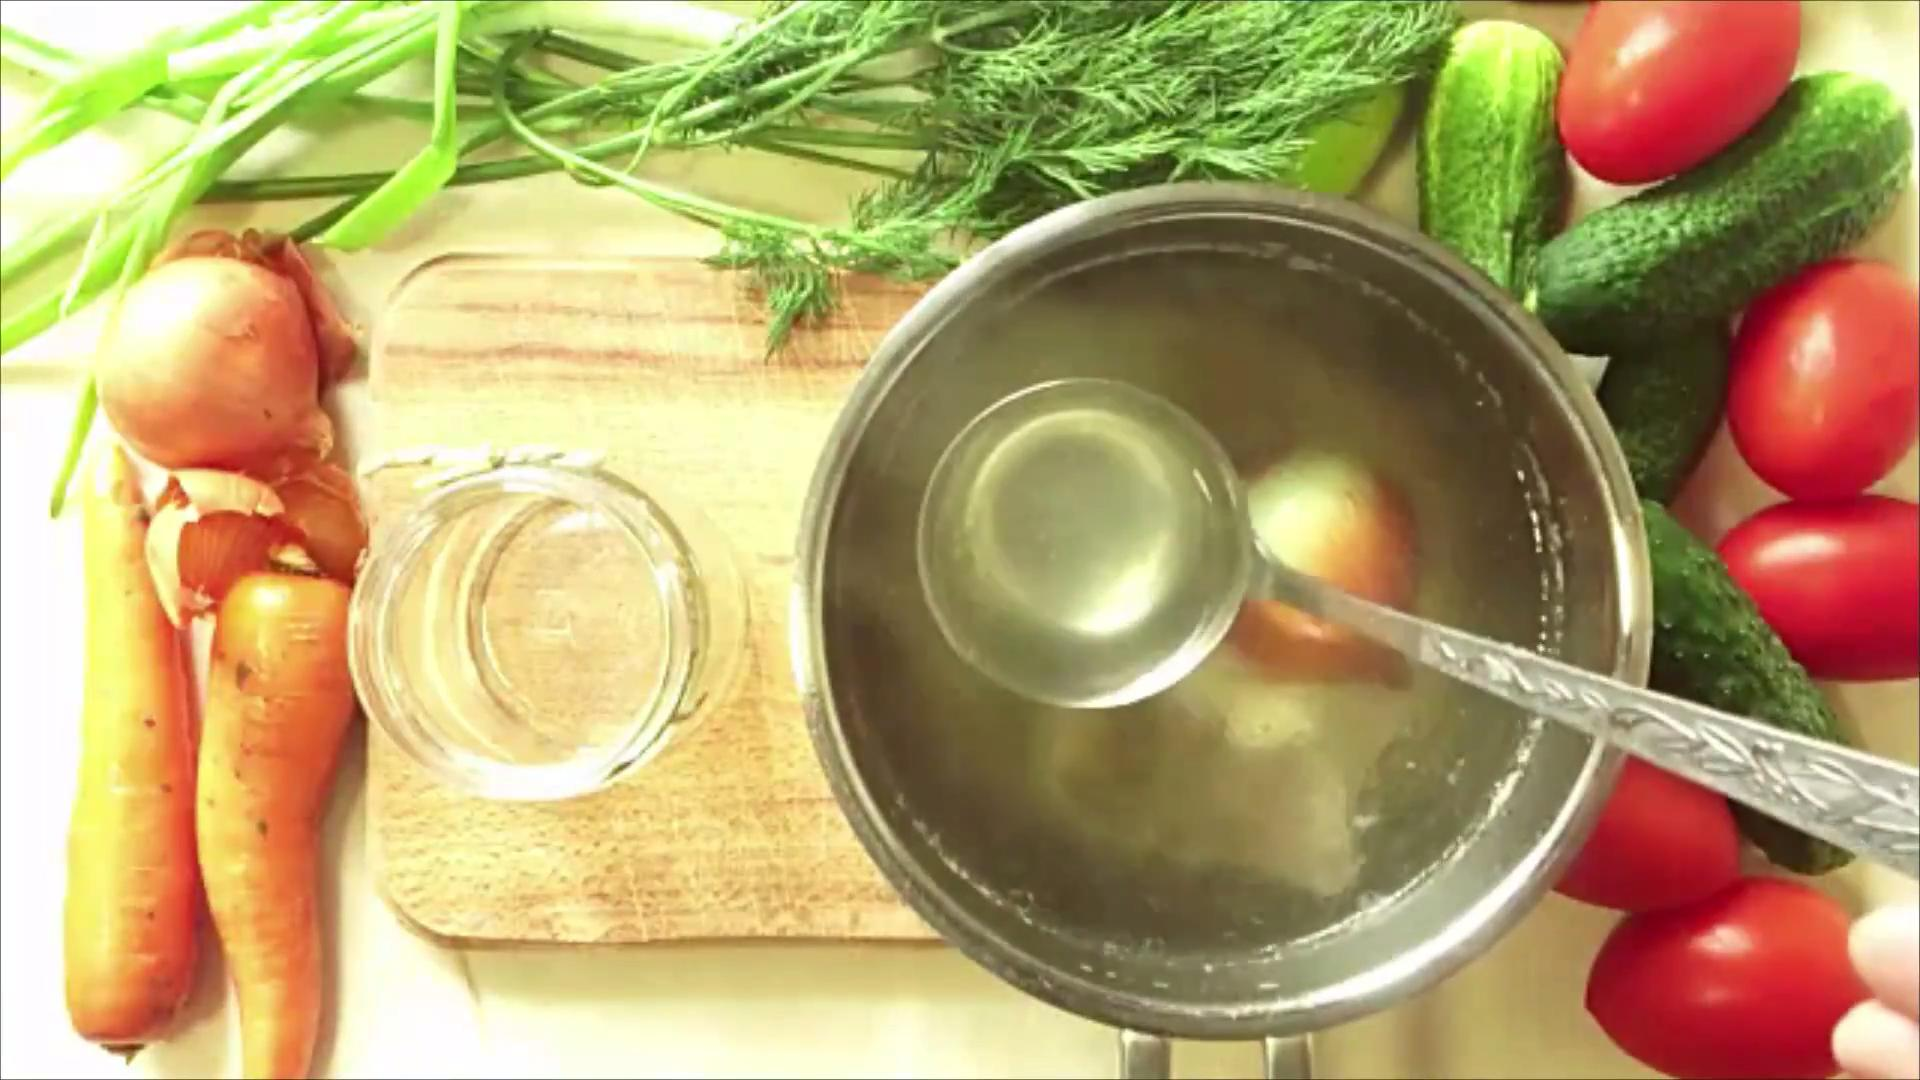 WATCH: The Secret to the Best Homemade Stock